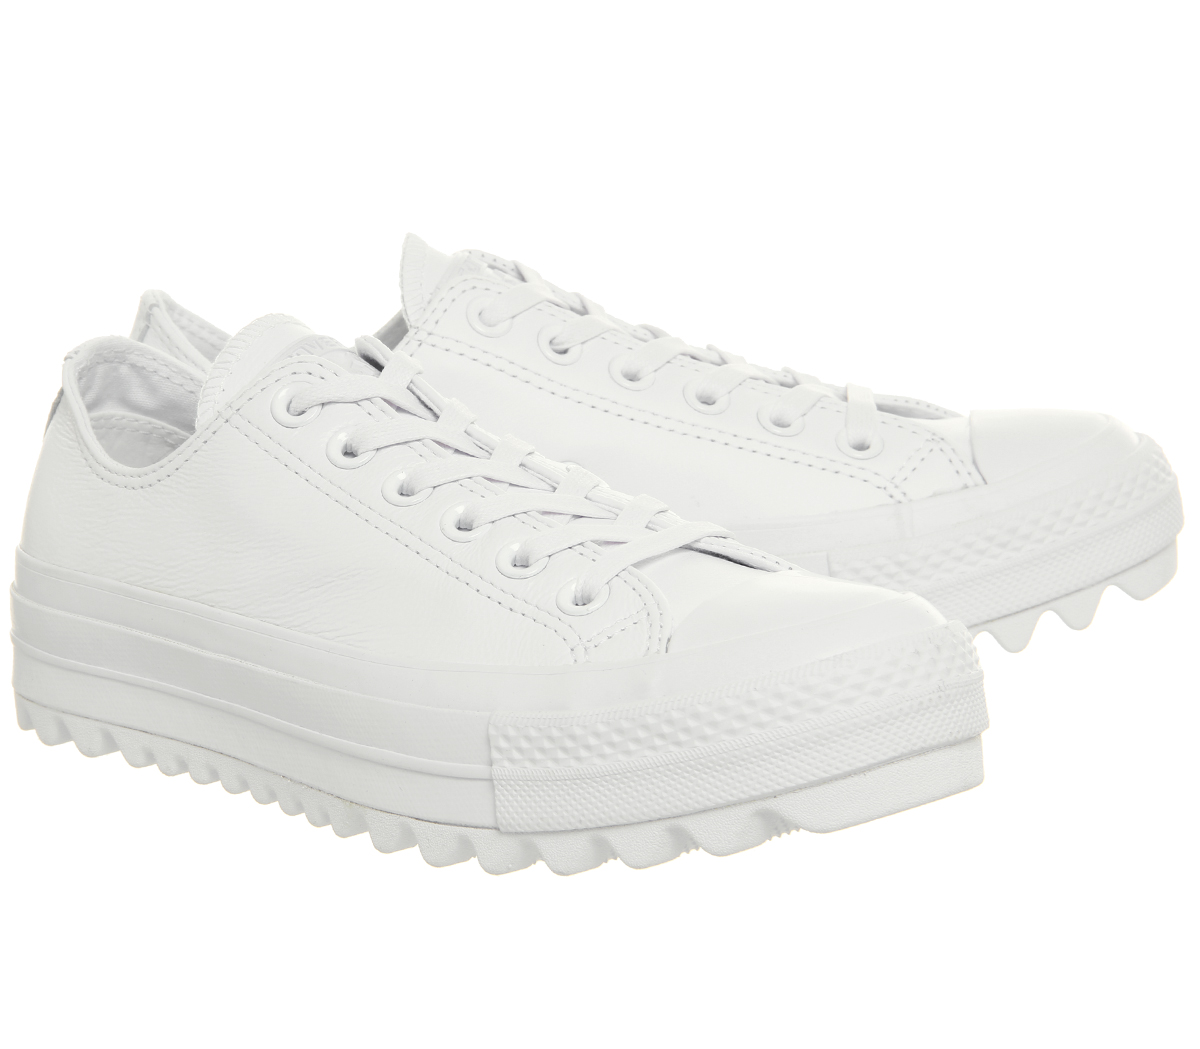 edf346556a75 Womens Converse Chuck Taylor All Star Lift Ripple Ox White Mono ...